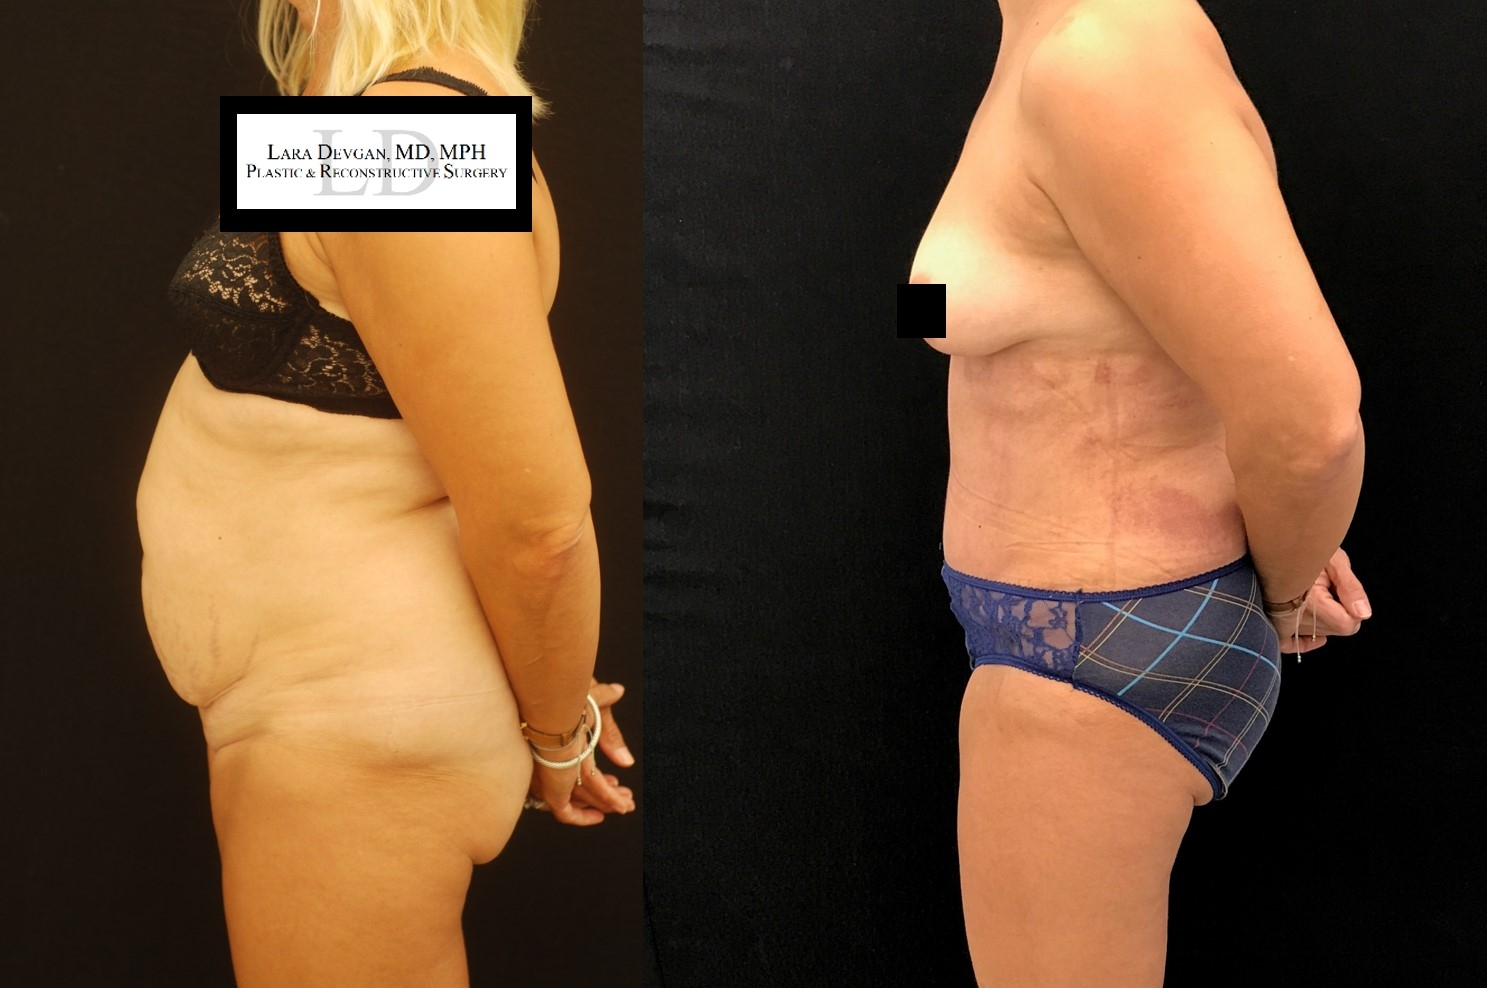 Actual patient of Dr. Devgan, before and 10 days after tummy tuck (abdominoplasty)